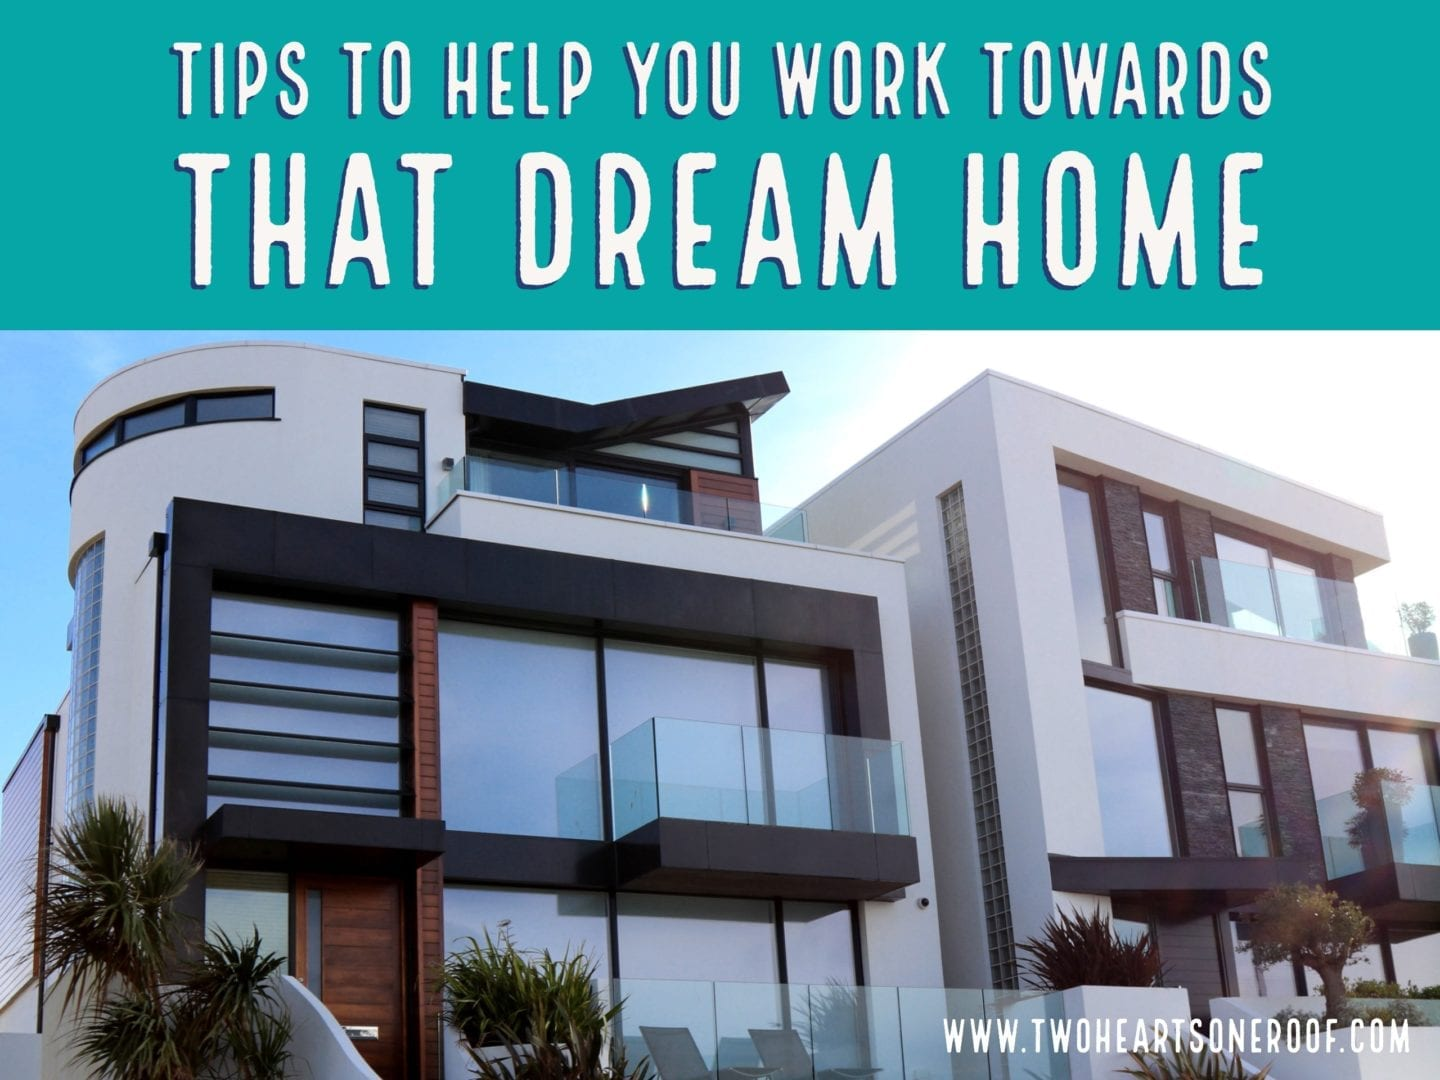 Tips to Help You Work Towards That Dream Home